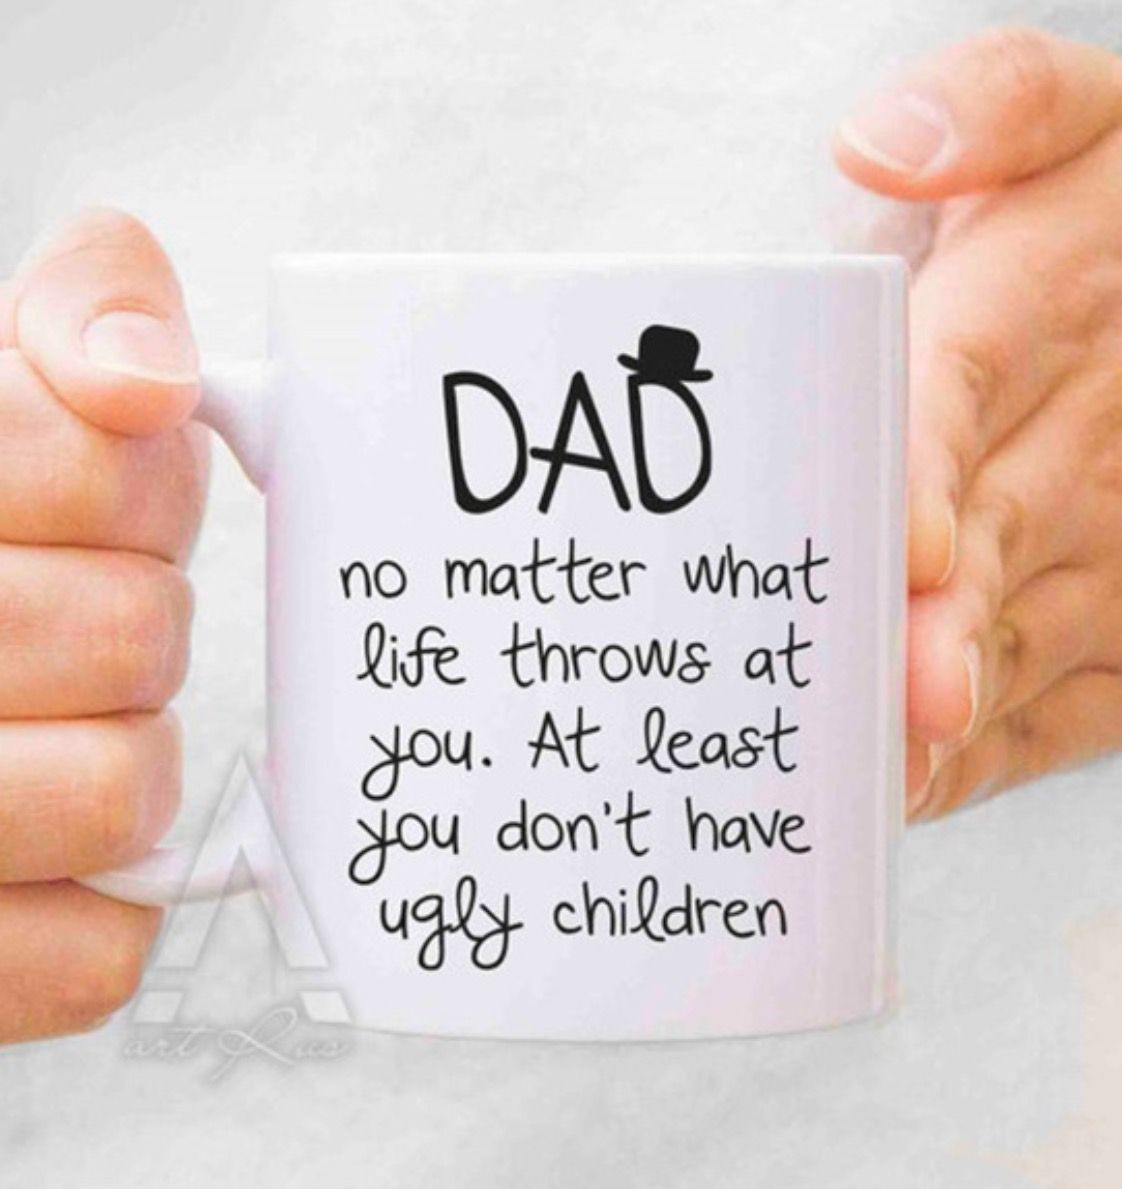 Fathers Day Quotes From Girlfriend To Boyfriend: Want This Mug?? Let Me Know. Thoughtful Gifts Humor Gifts